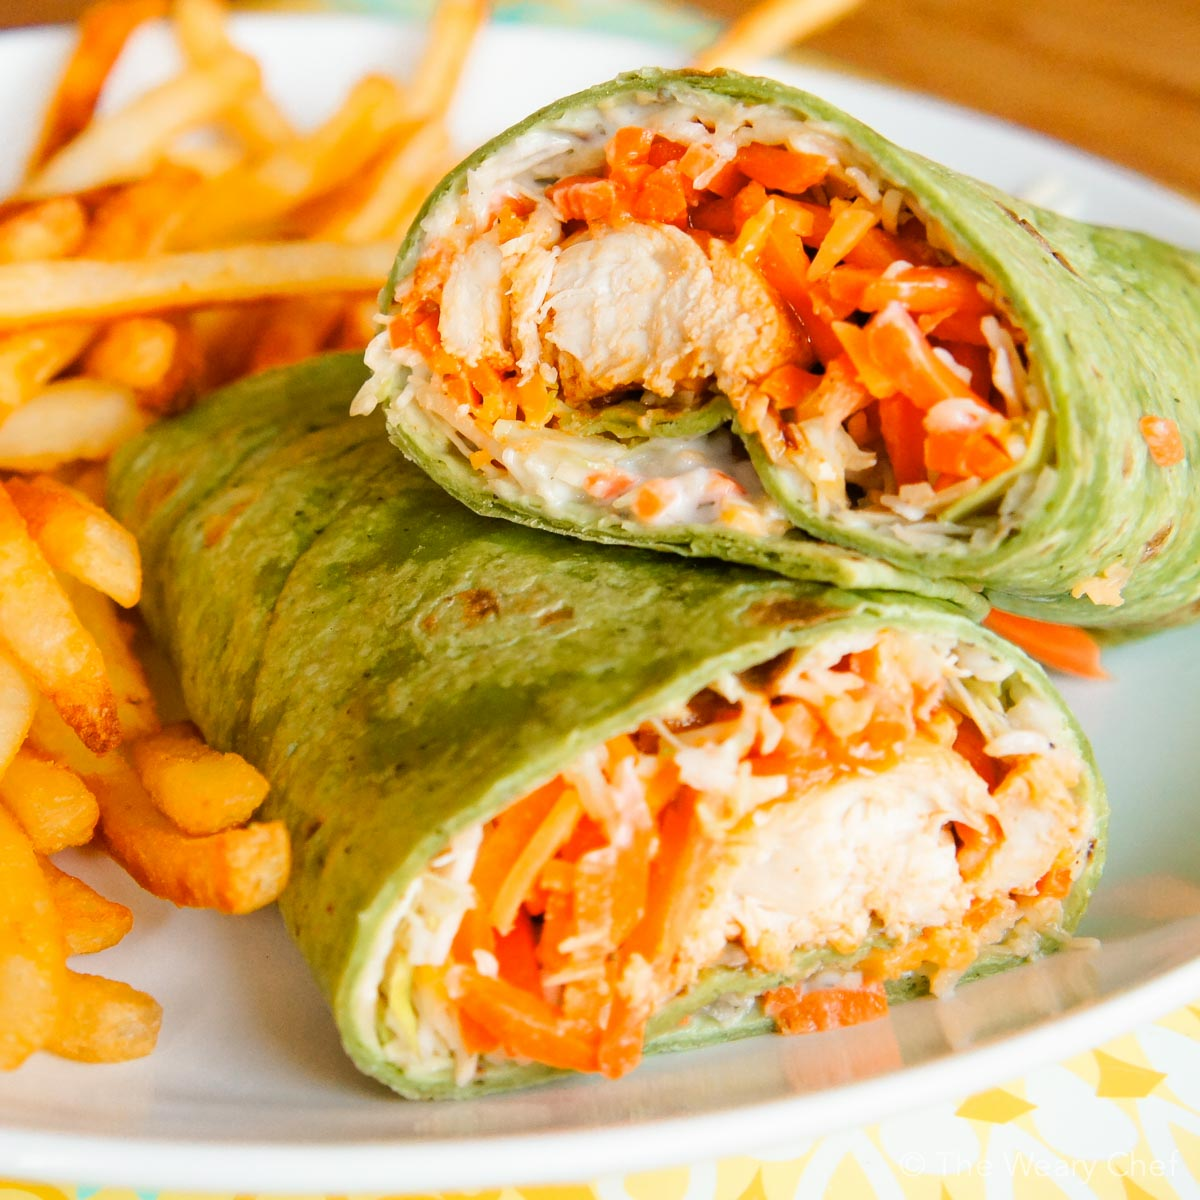 Buffalo Chicken Wraps: A fun and tasty dinner idea! - The ...